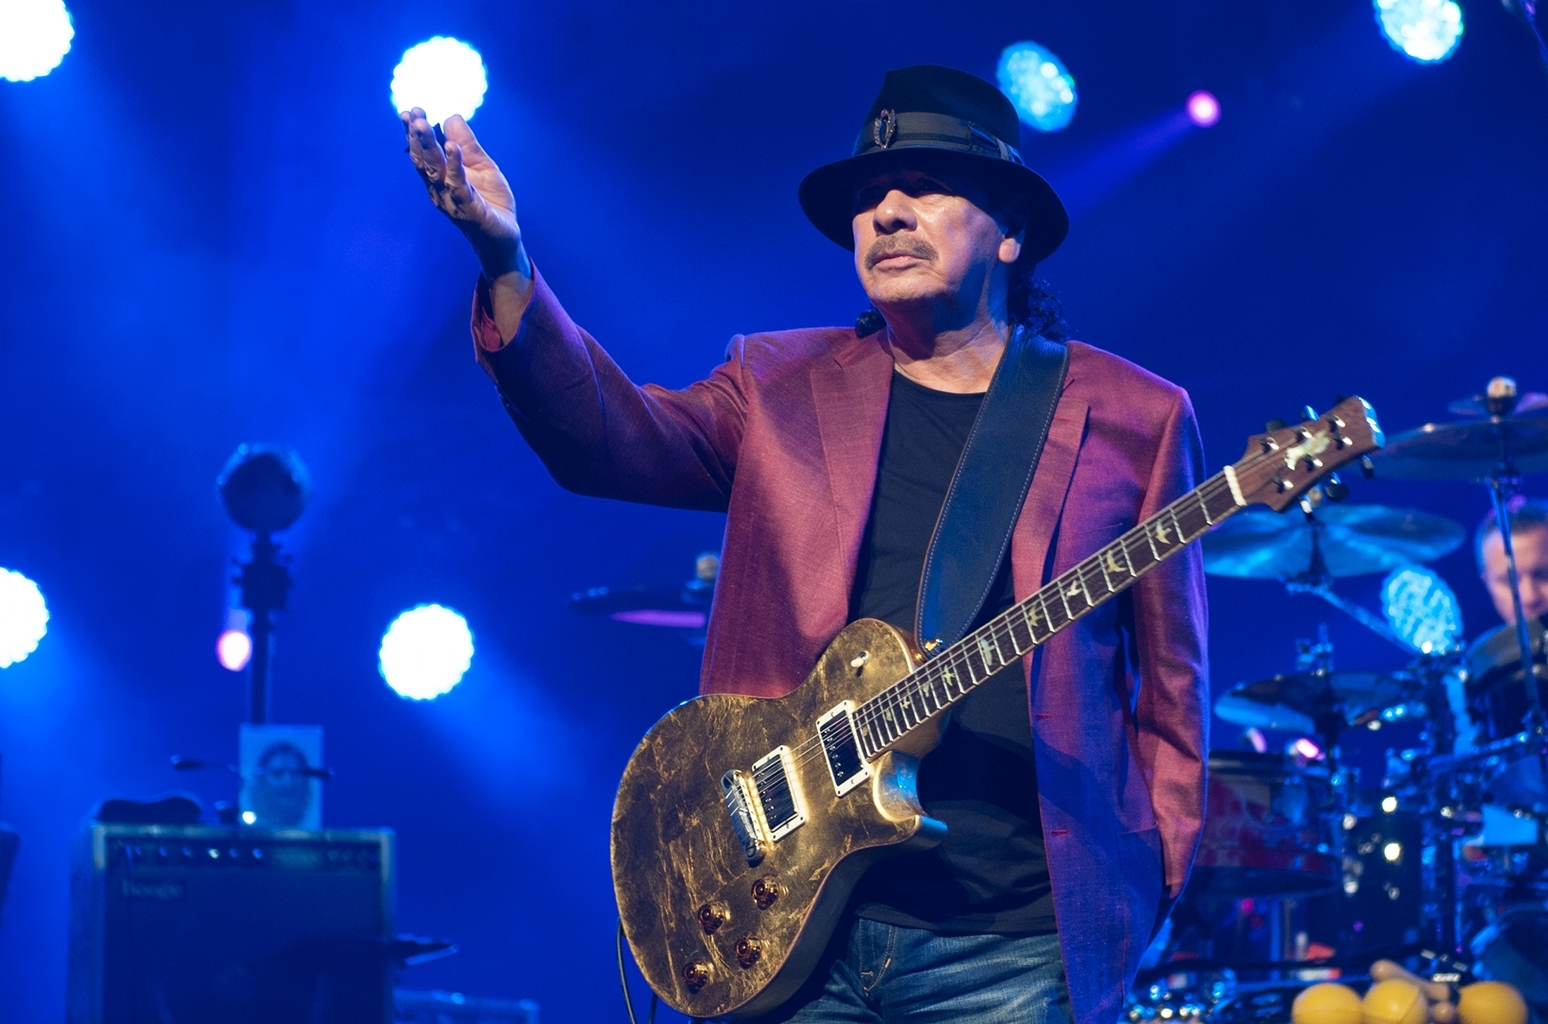 carlos santana on las vegas shooting: 'why allow weapons of mass